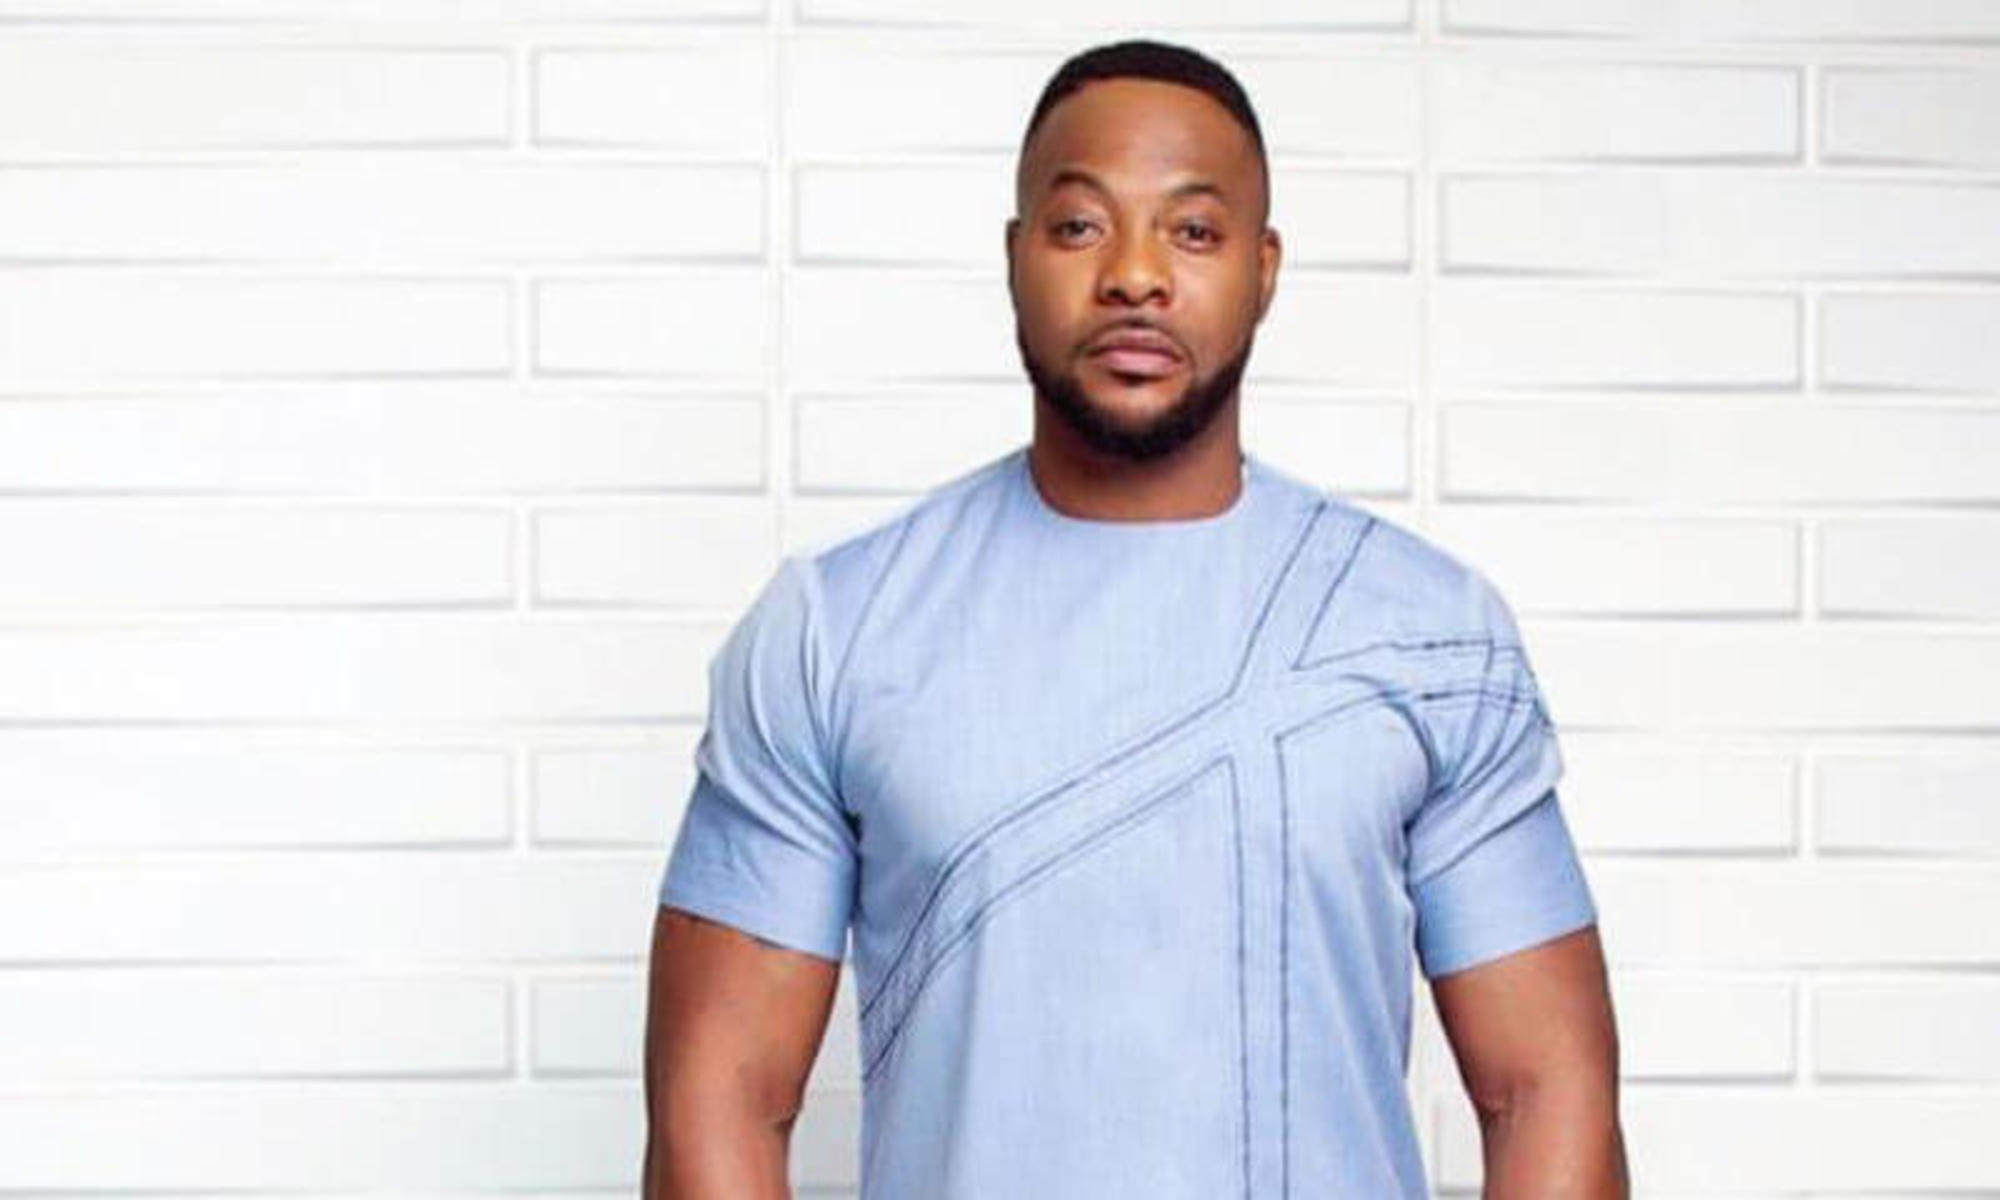 'I Will End Anyone Who Defiles My 14-Year-Old Daughter - Actor Bolanle Ninalowo